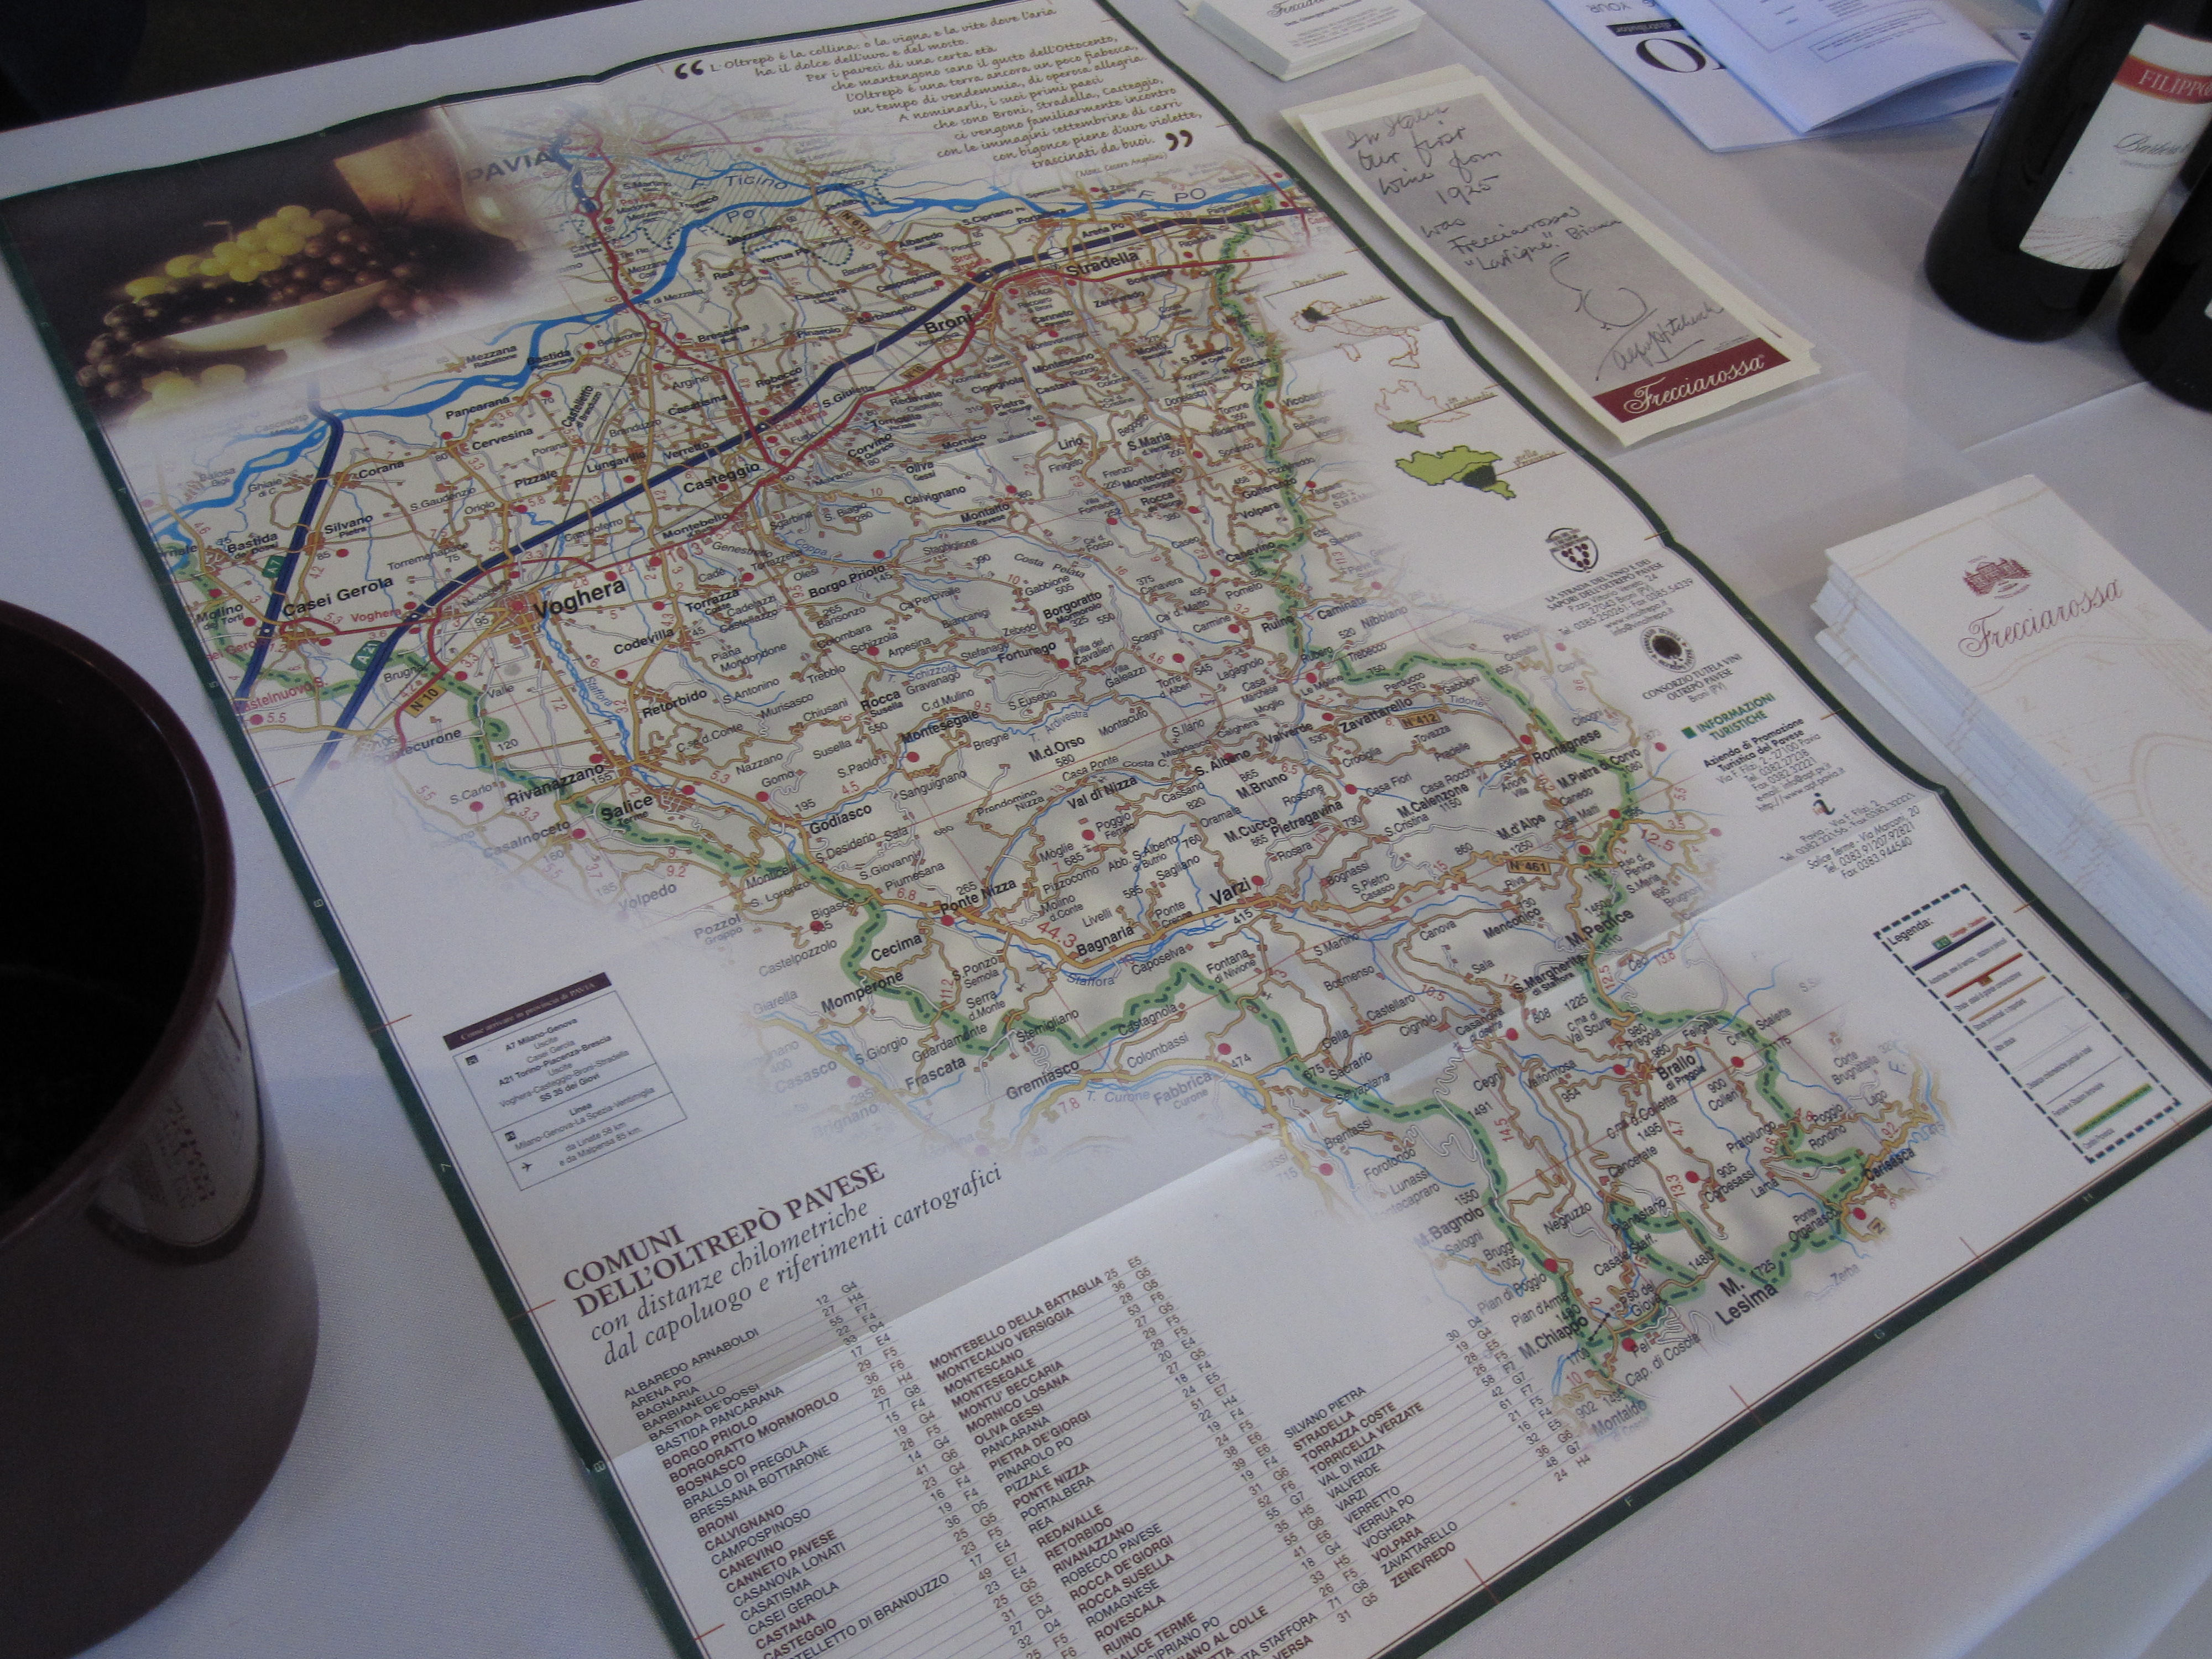 Many of the wines were from wine regions I had never heard of. Luckily, there were plenty of maps to study.